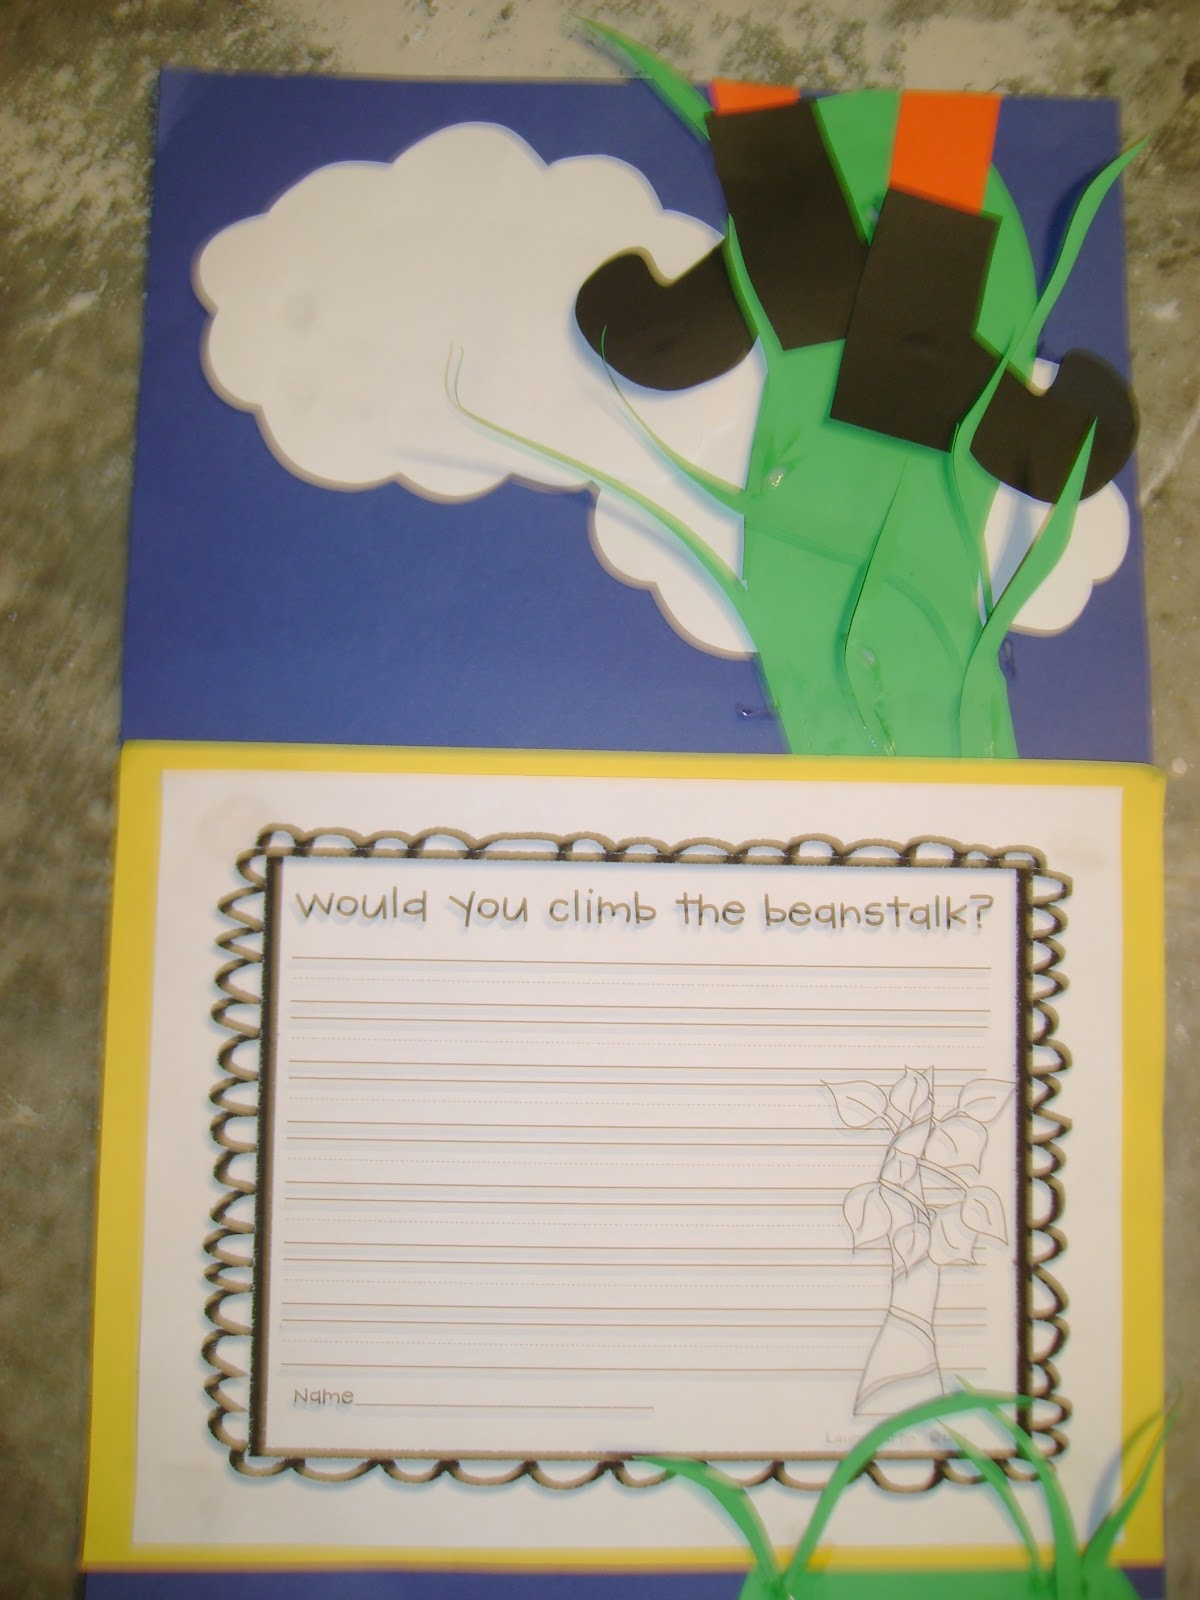 Jack and the Beanstalk Resources